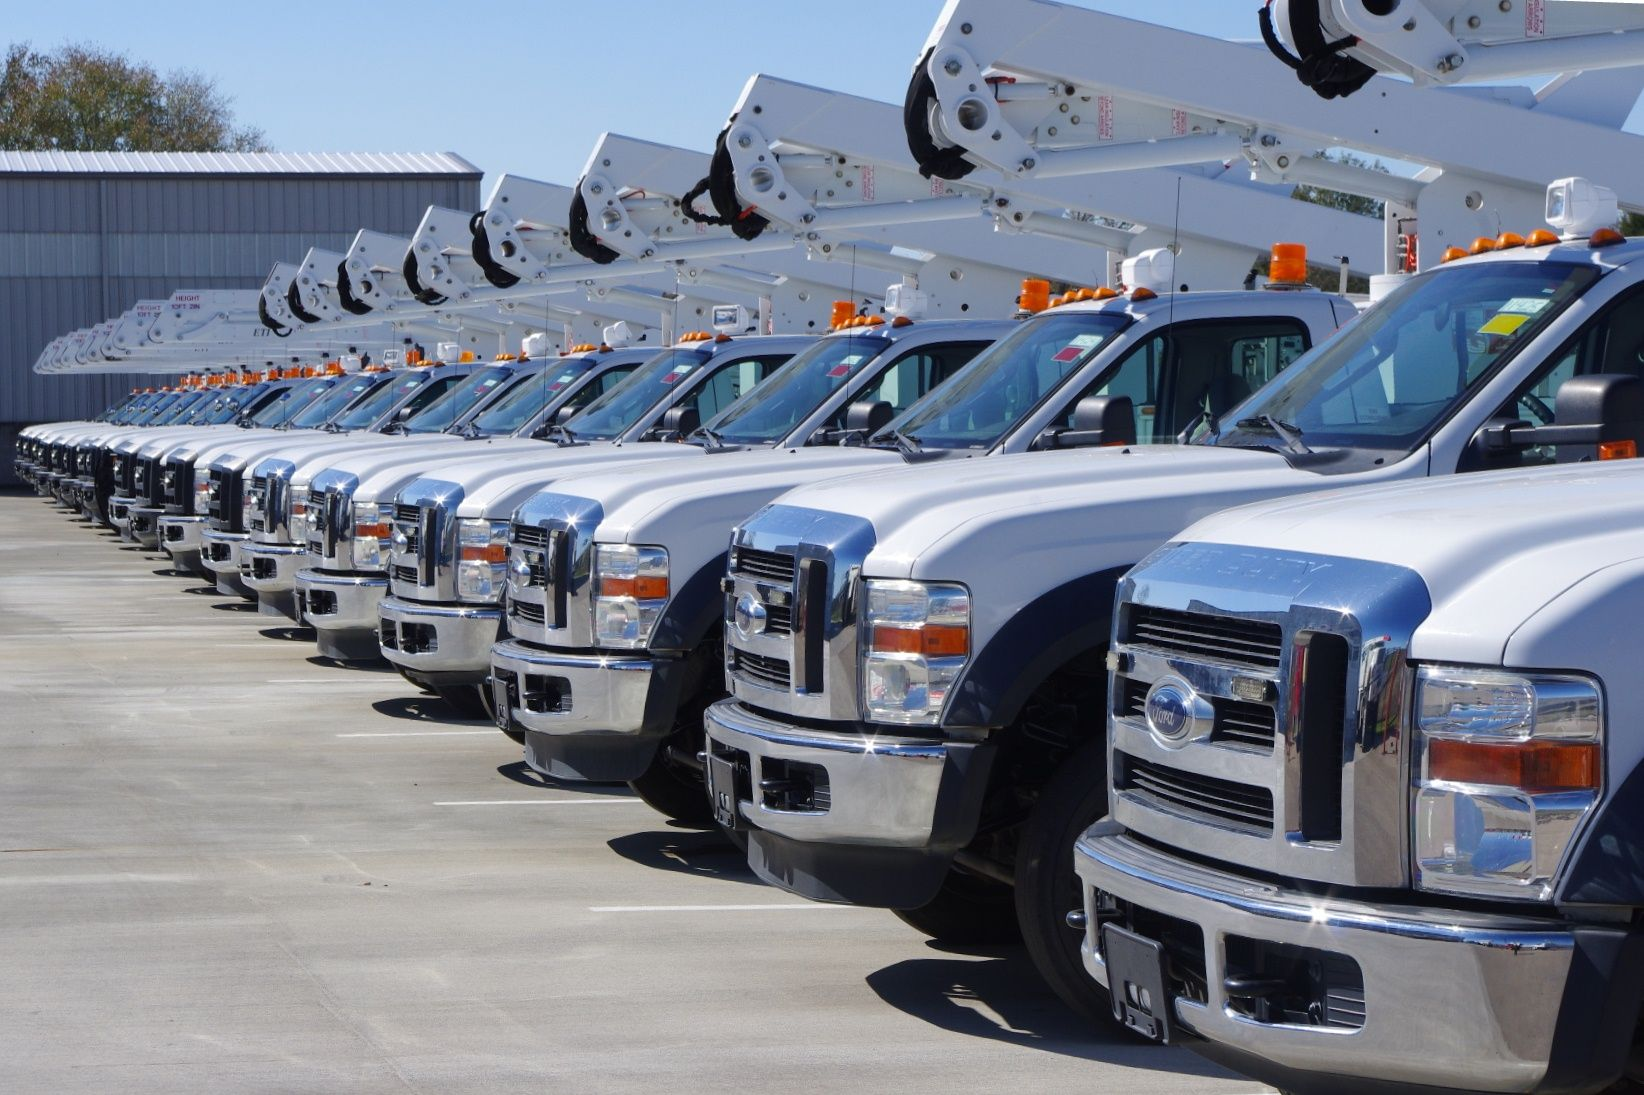 Fleet trucks for sale trucks accessories and modification image gallery